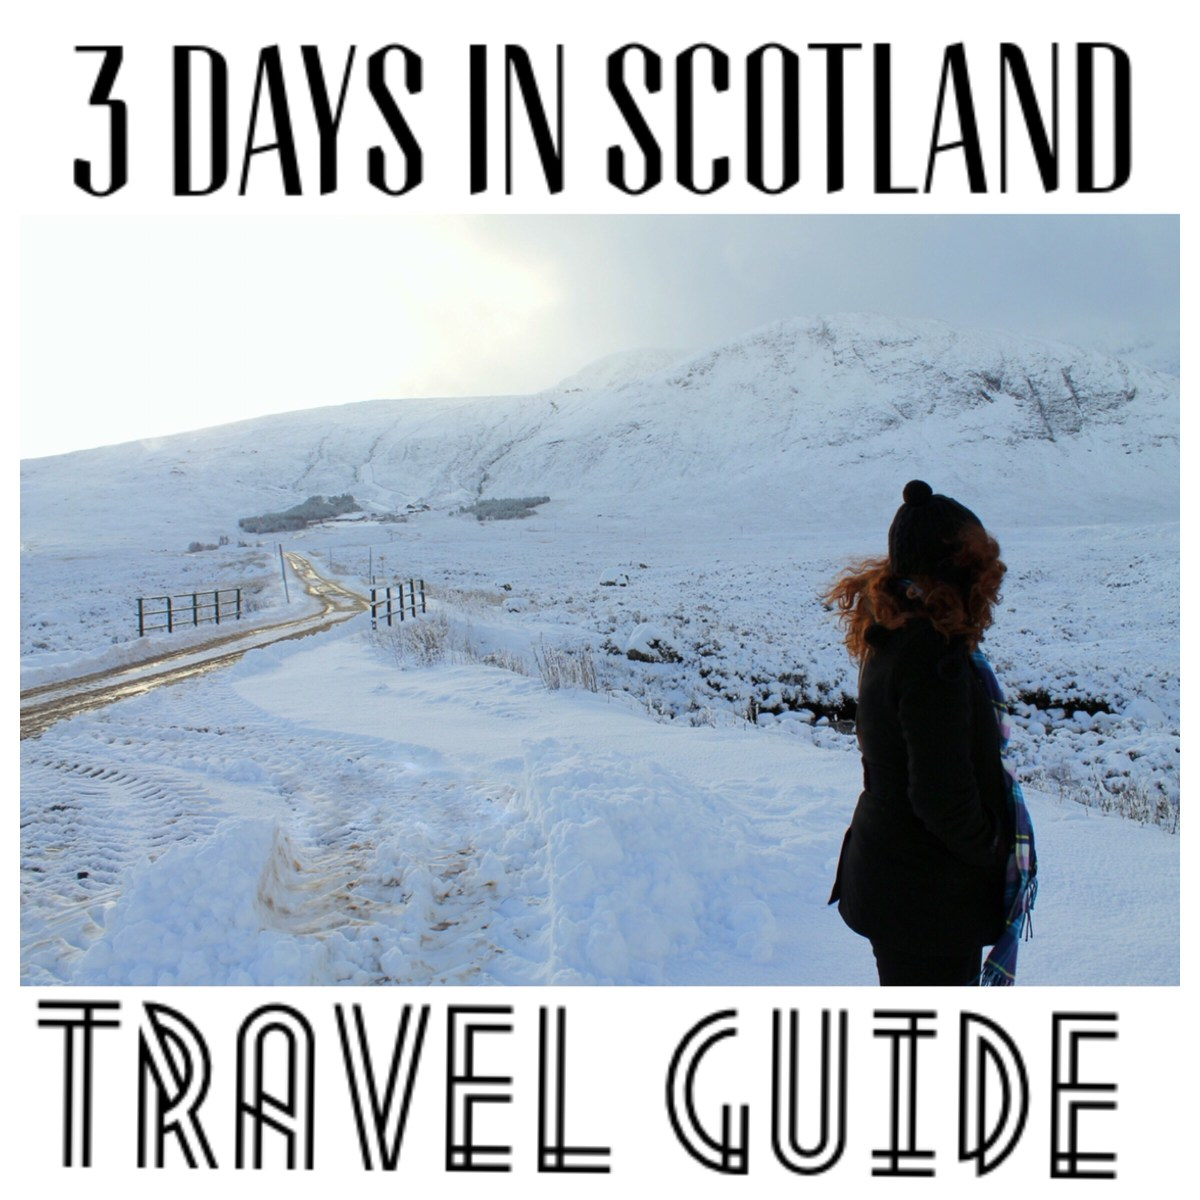 3 Days In Scotland: Travel Guide